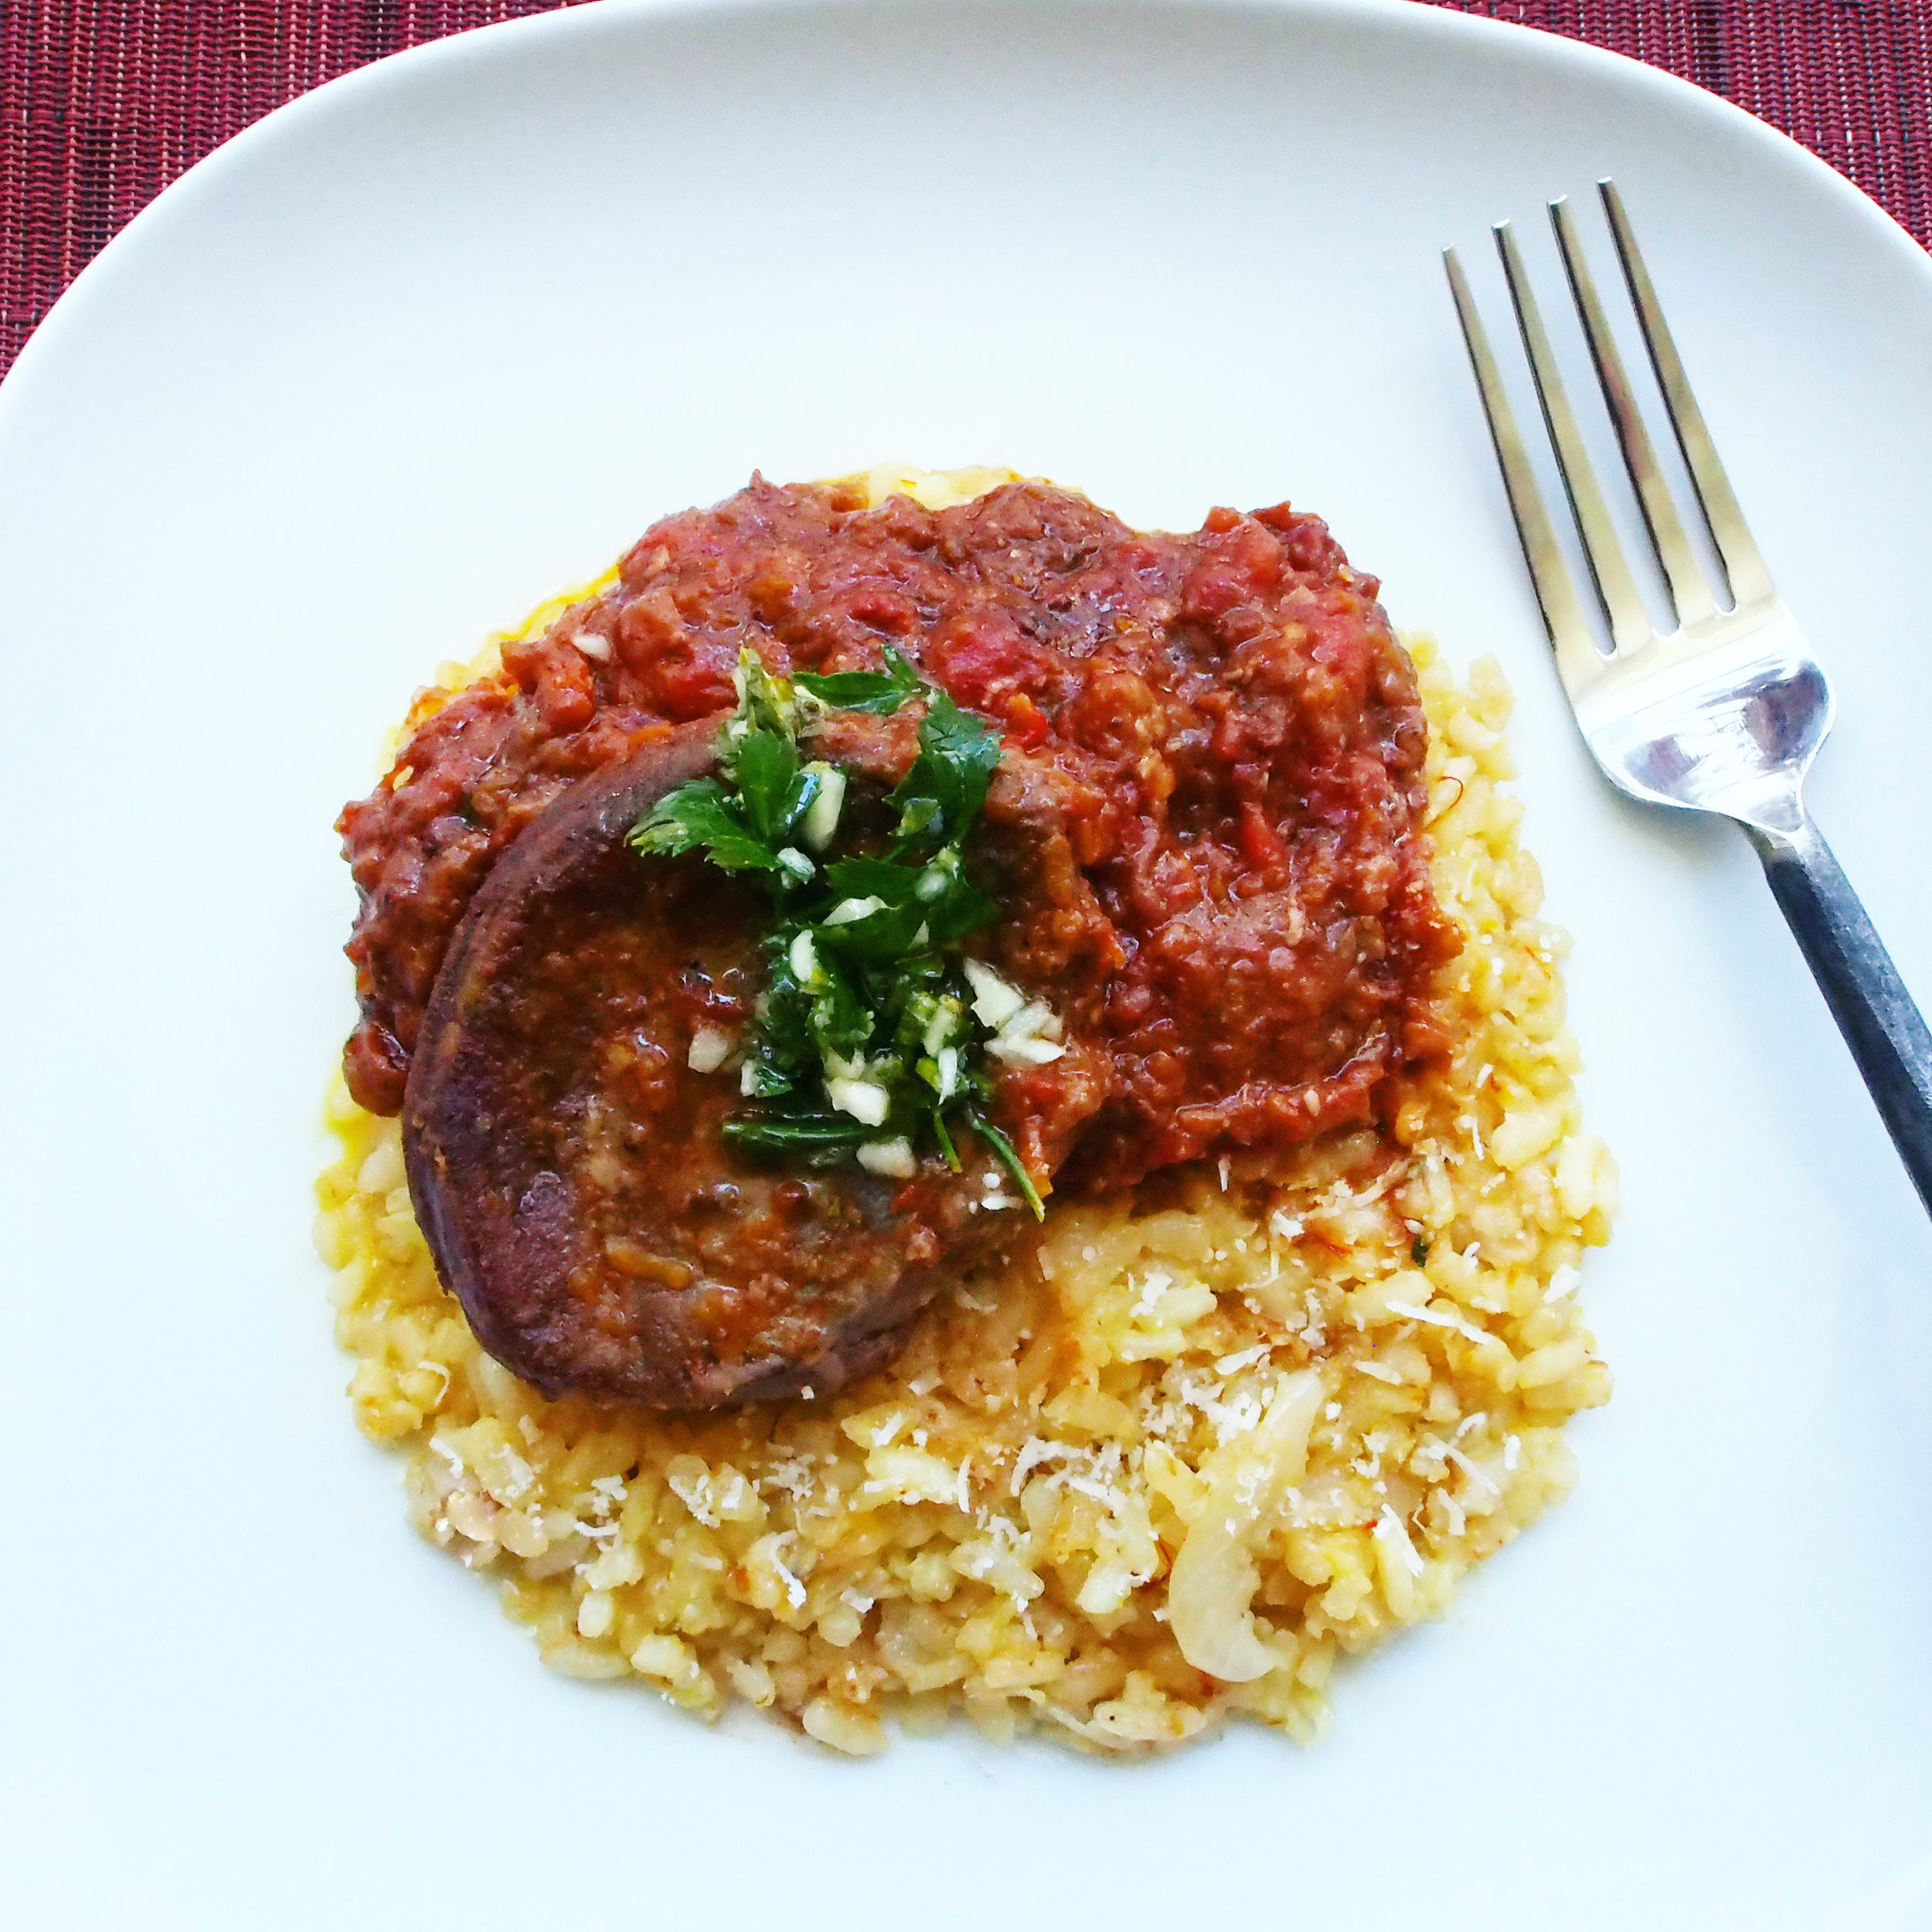 This is a traditional Italian Osso Bucco recipe. Served over a bed of milanese risotto, it's not only an authentic Italian meal, but is super delicious. An easy recipe with simple instructions to follow, you'll mostly just sit around while the ingredients transform into delicious flavors!